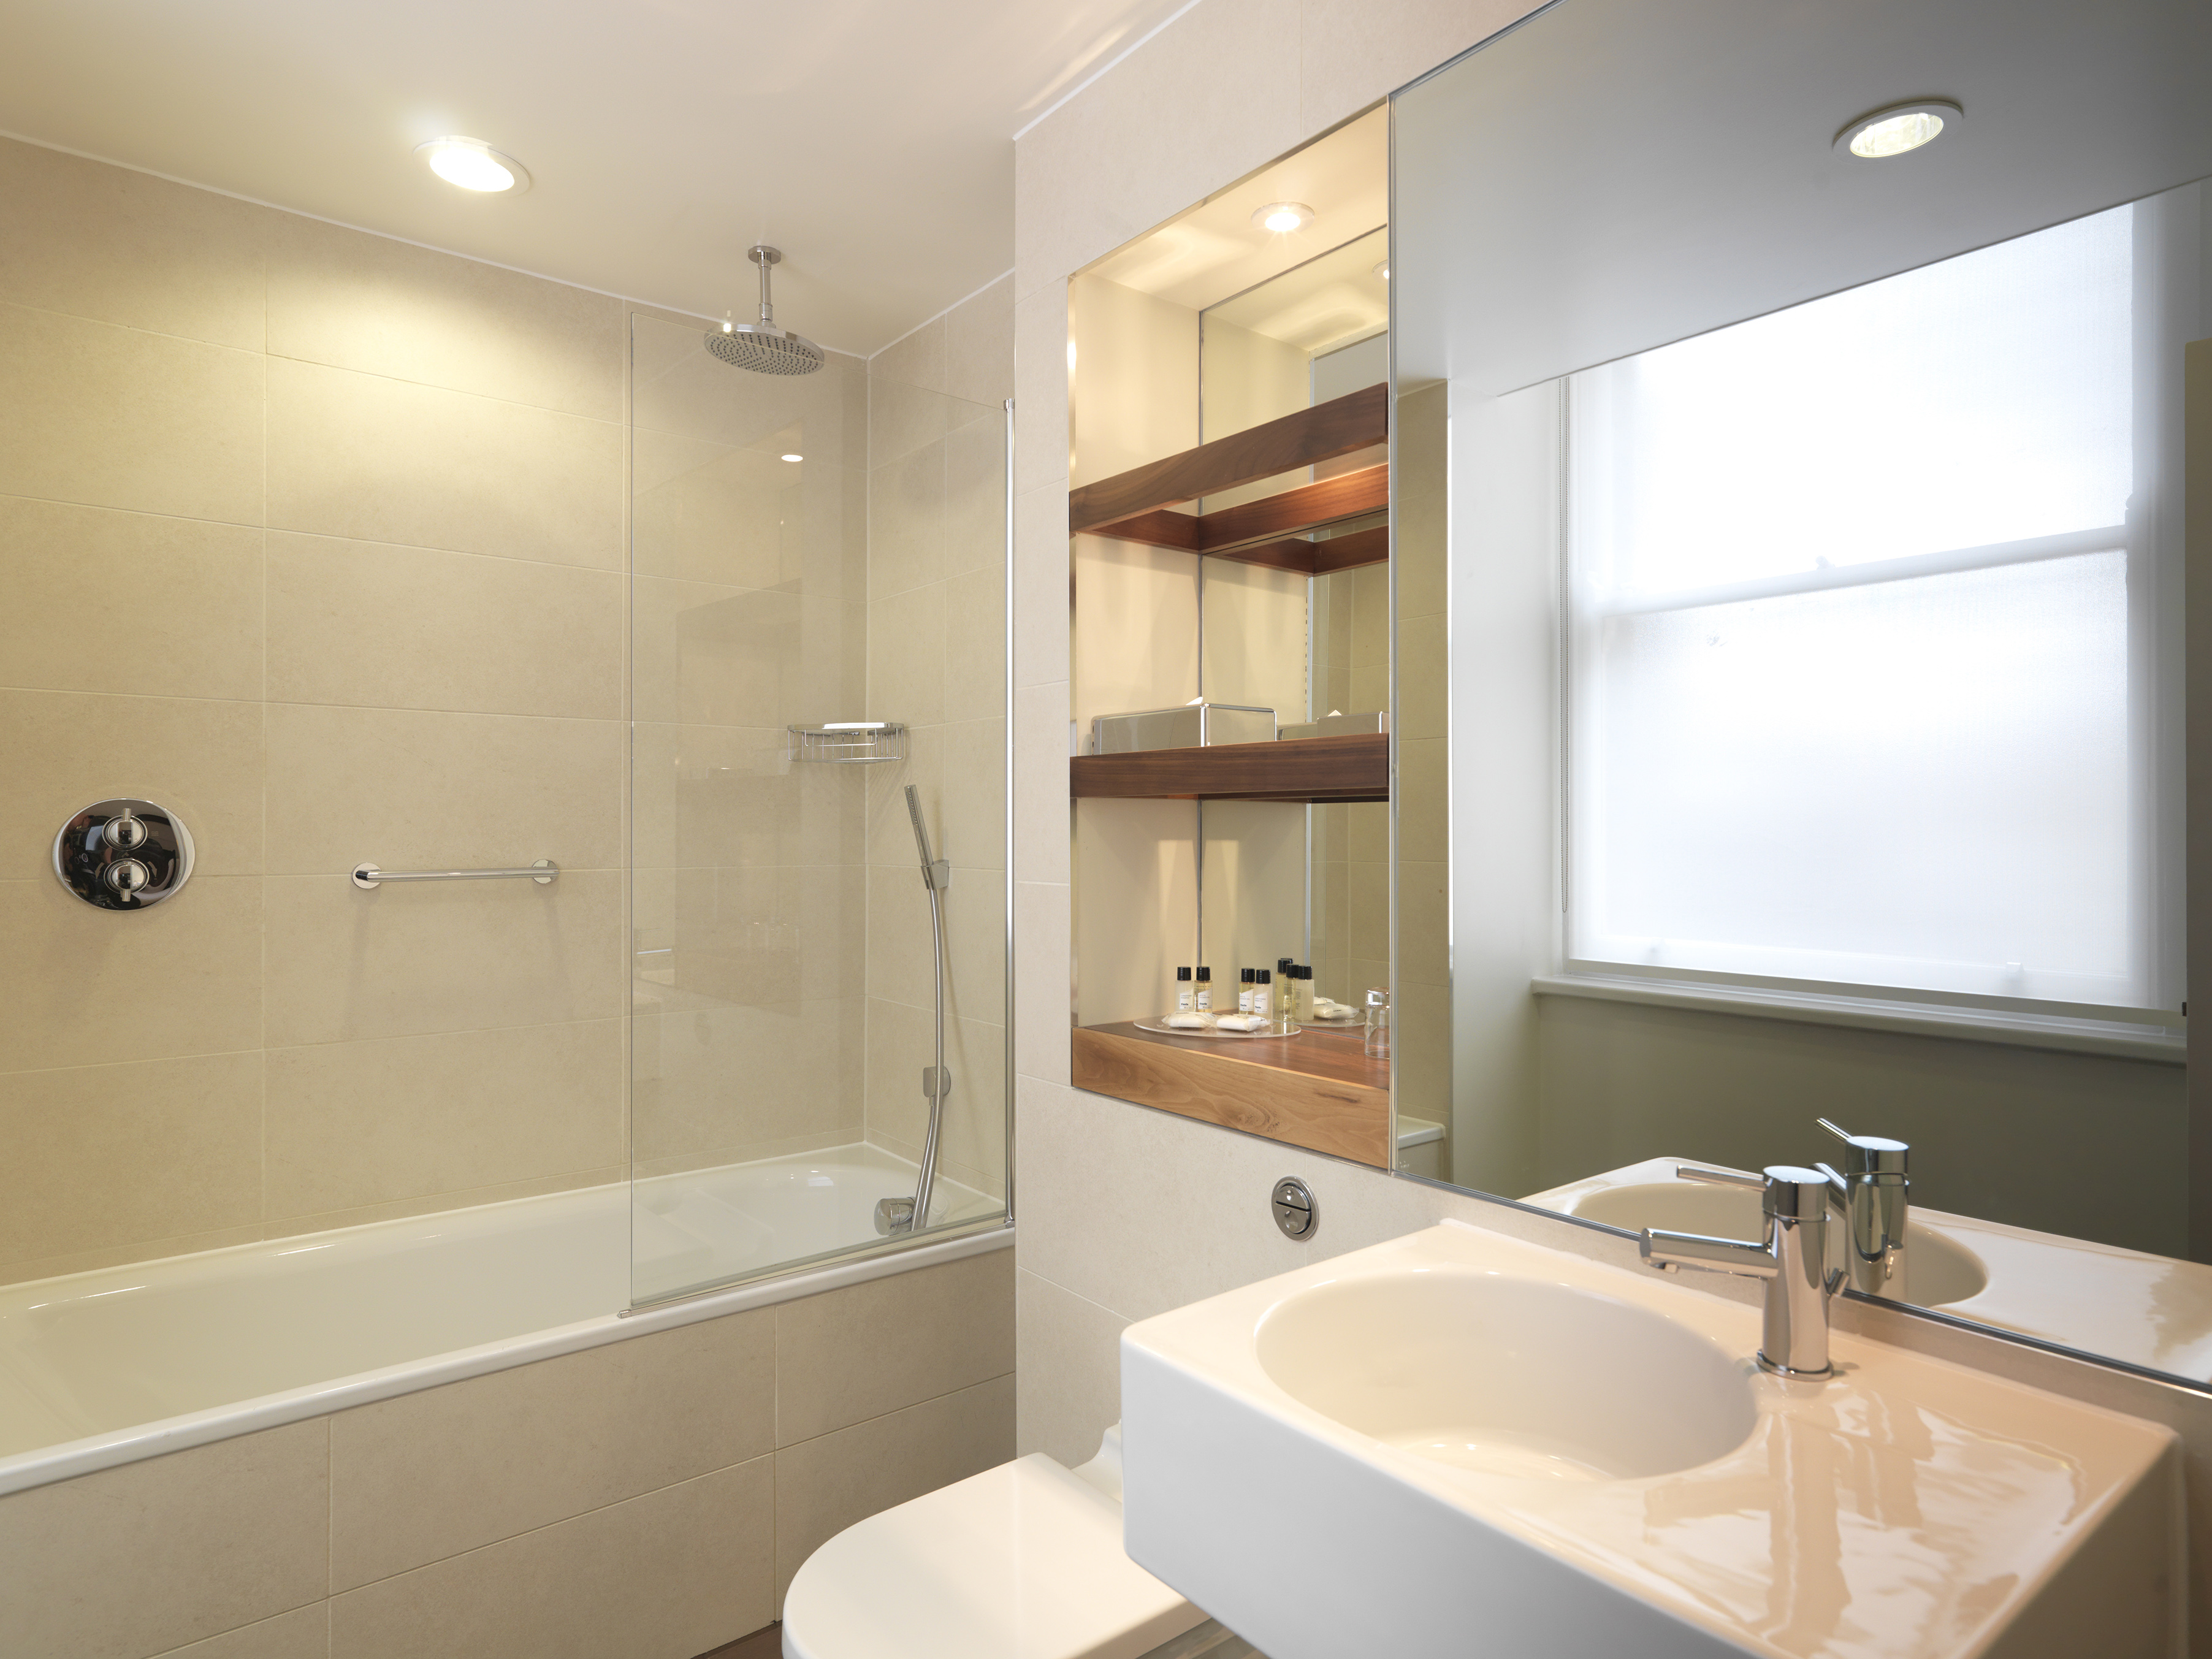 https://www.hotelsbyday.com/_data/default-hotel_image/0/4294/hi-h0bkr-27087798-thistle-london-hotel-bedrooms-executive-double-shower.jpg